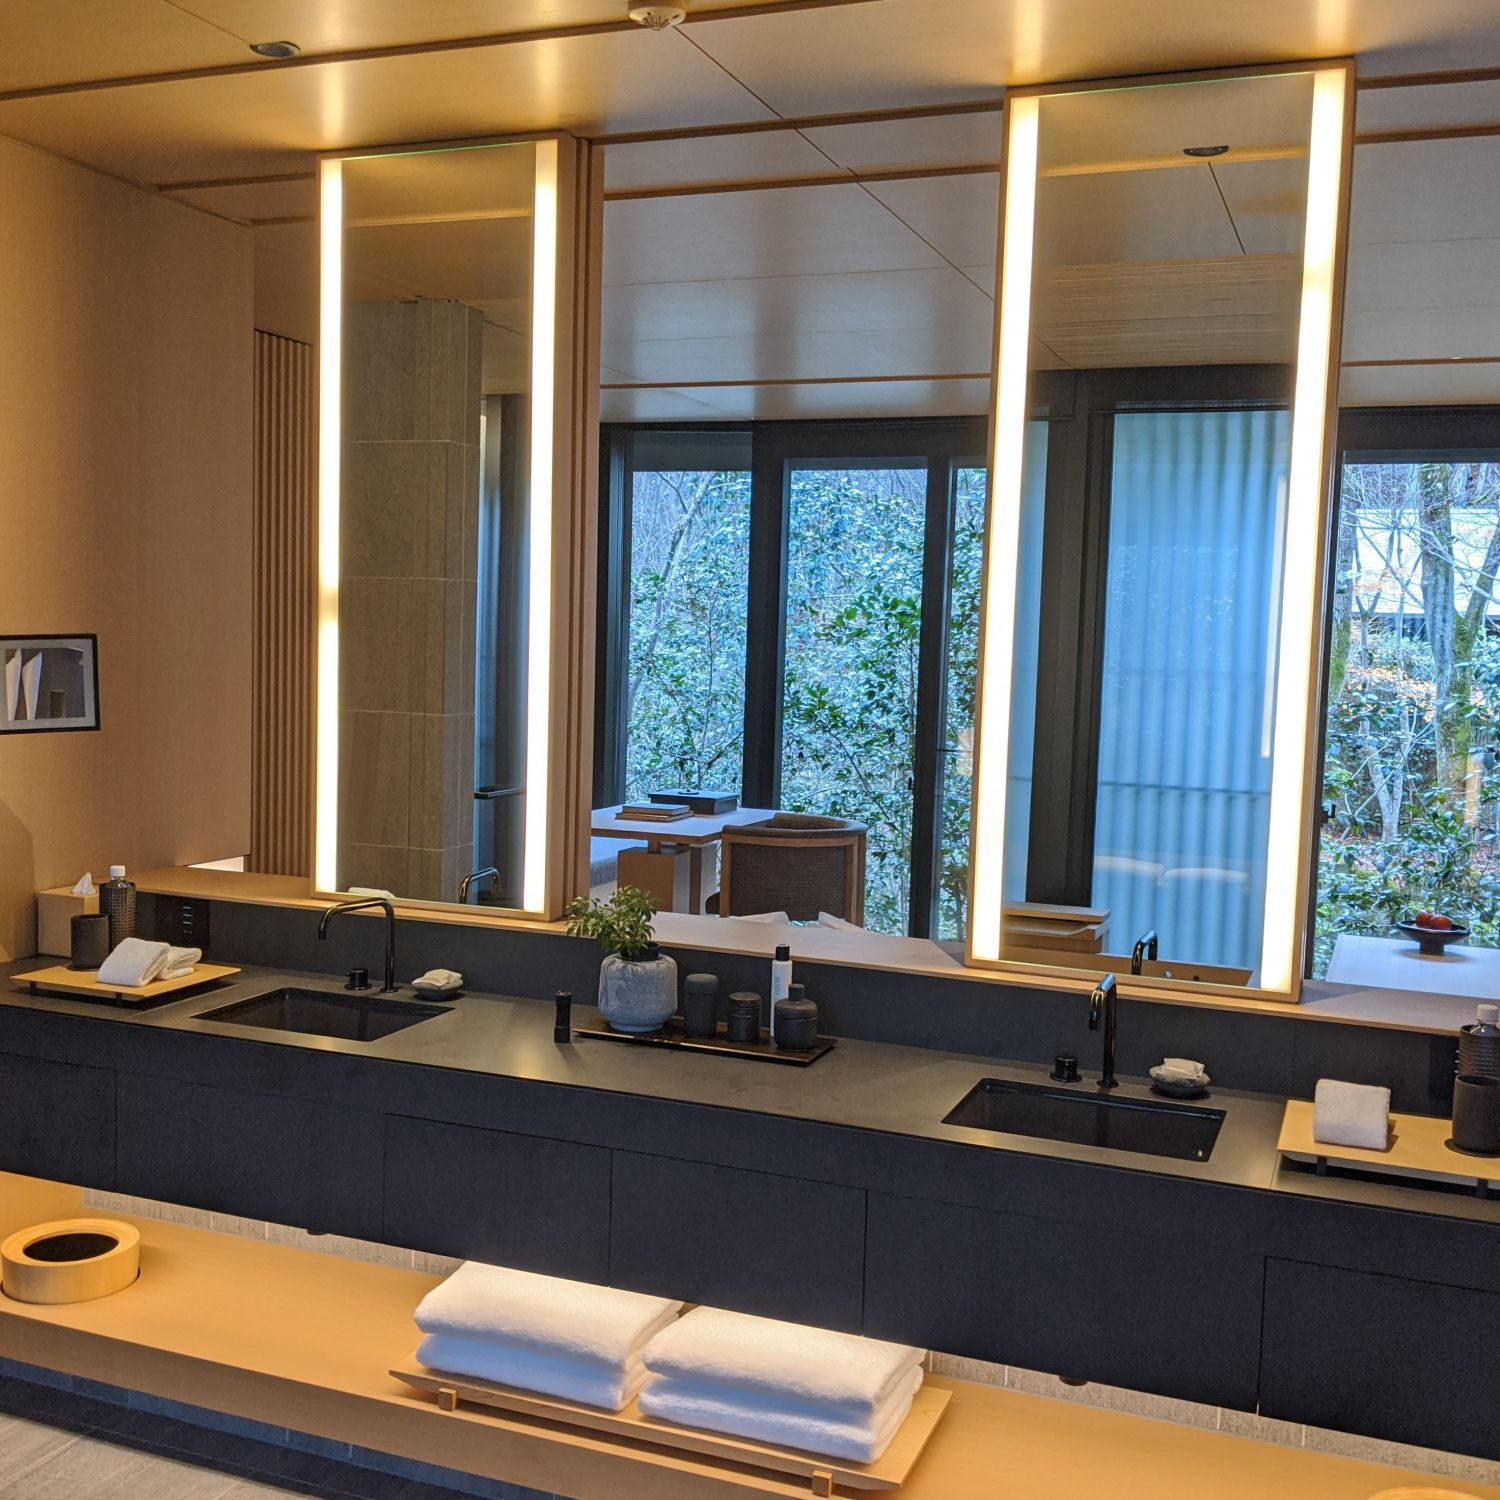 Hotel Review Aman Kyoto (Kaede Room) Tranquil, Forested